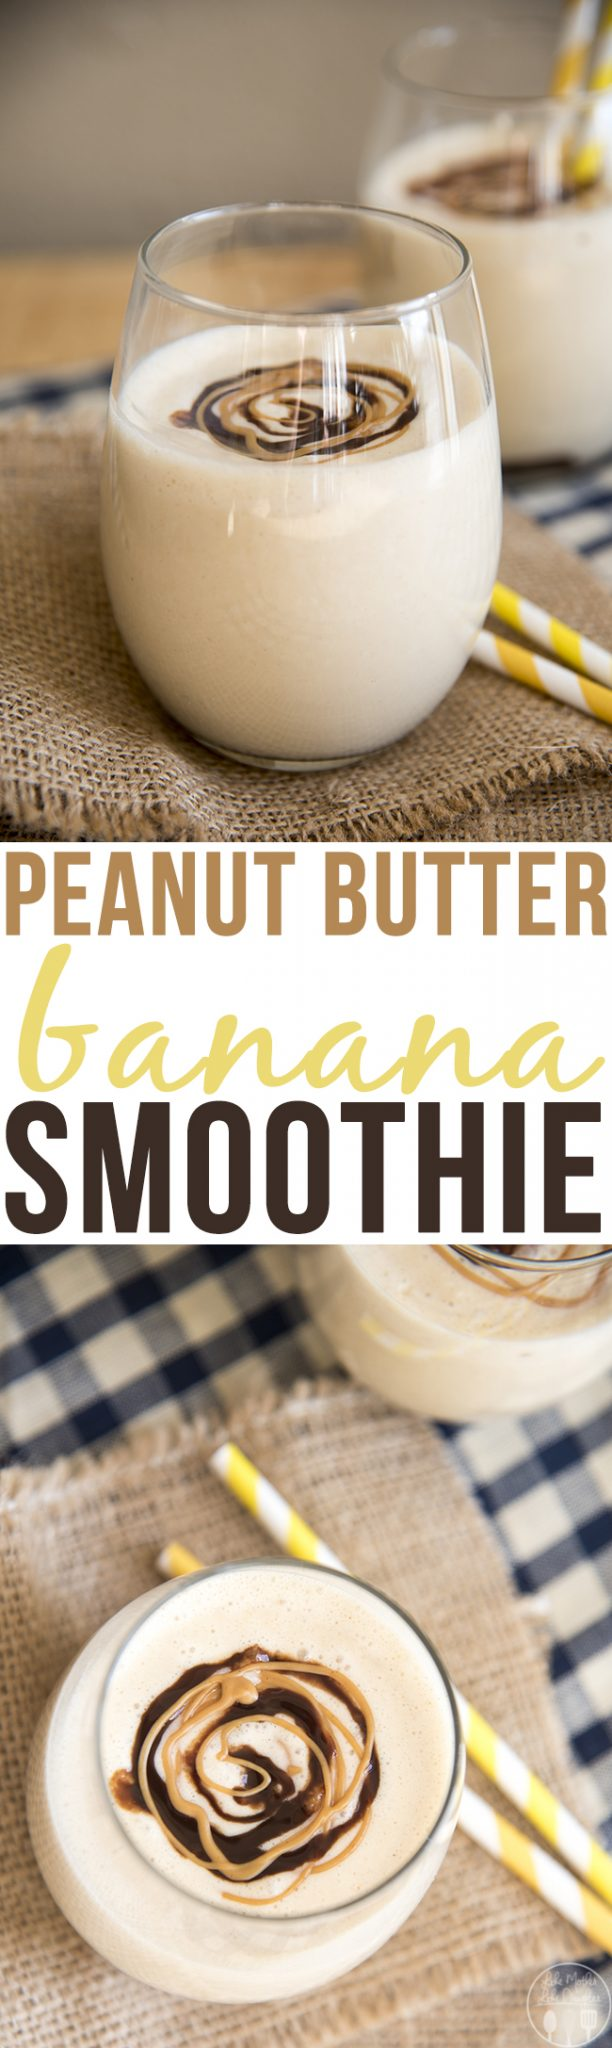 This deliciously creamy peanut butter banana smoothie is only 5 ingredients, and blends together in just minutes. Its got the perfect peanut butter and banana flavors for a delicious smoothie everyone will love!